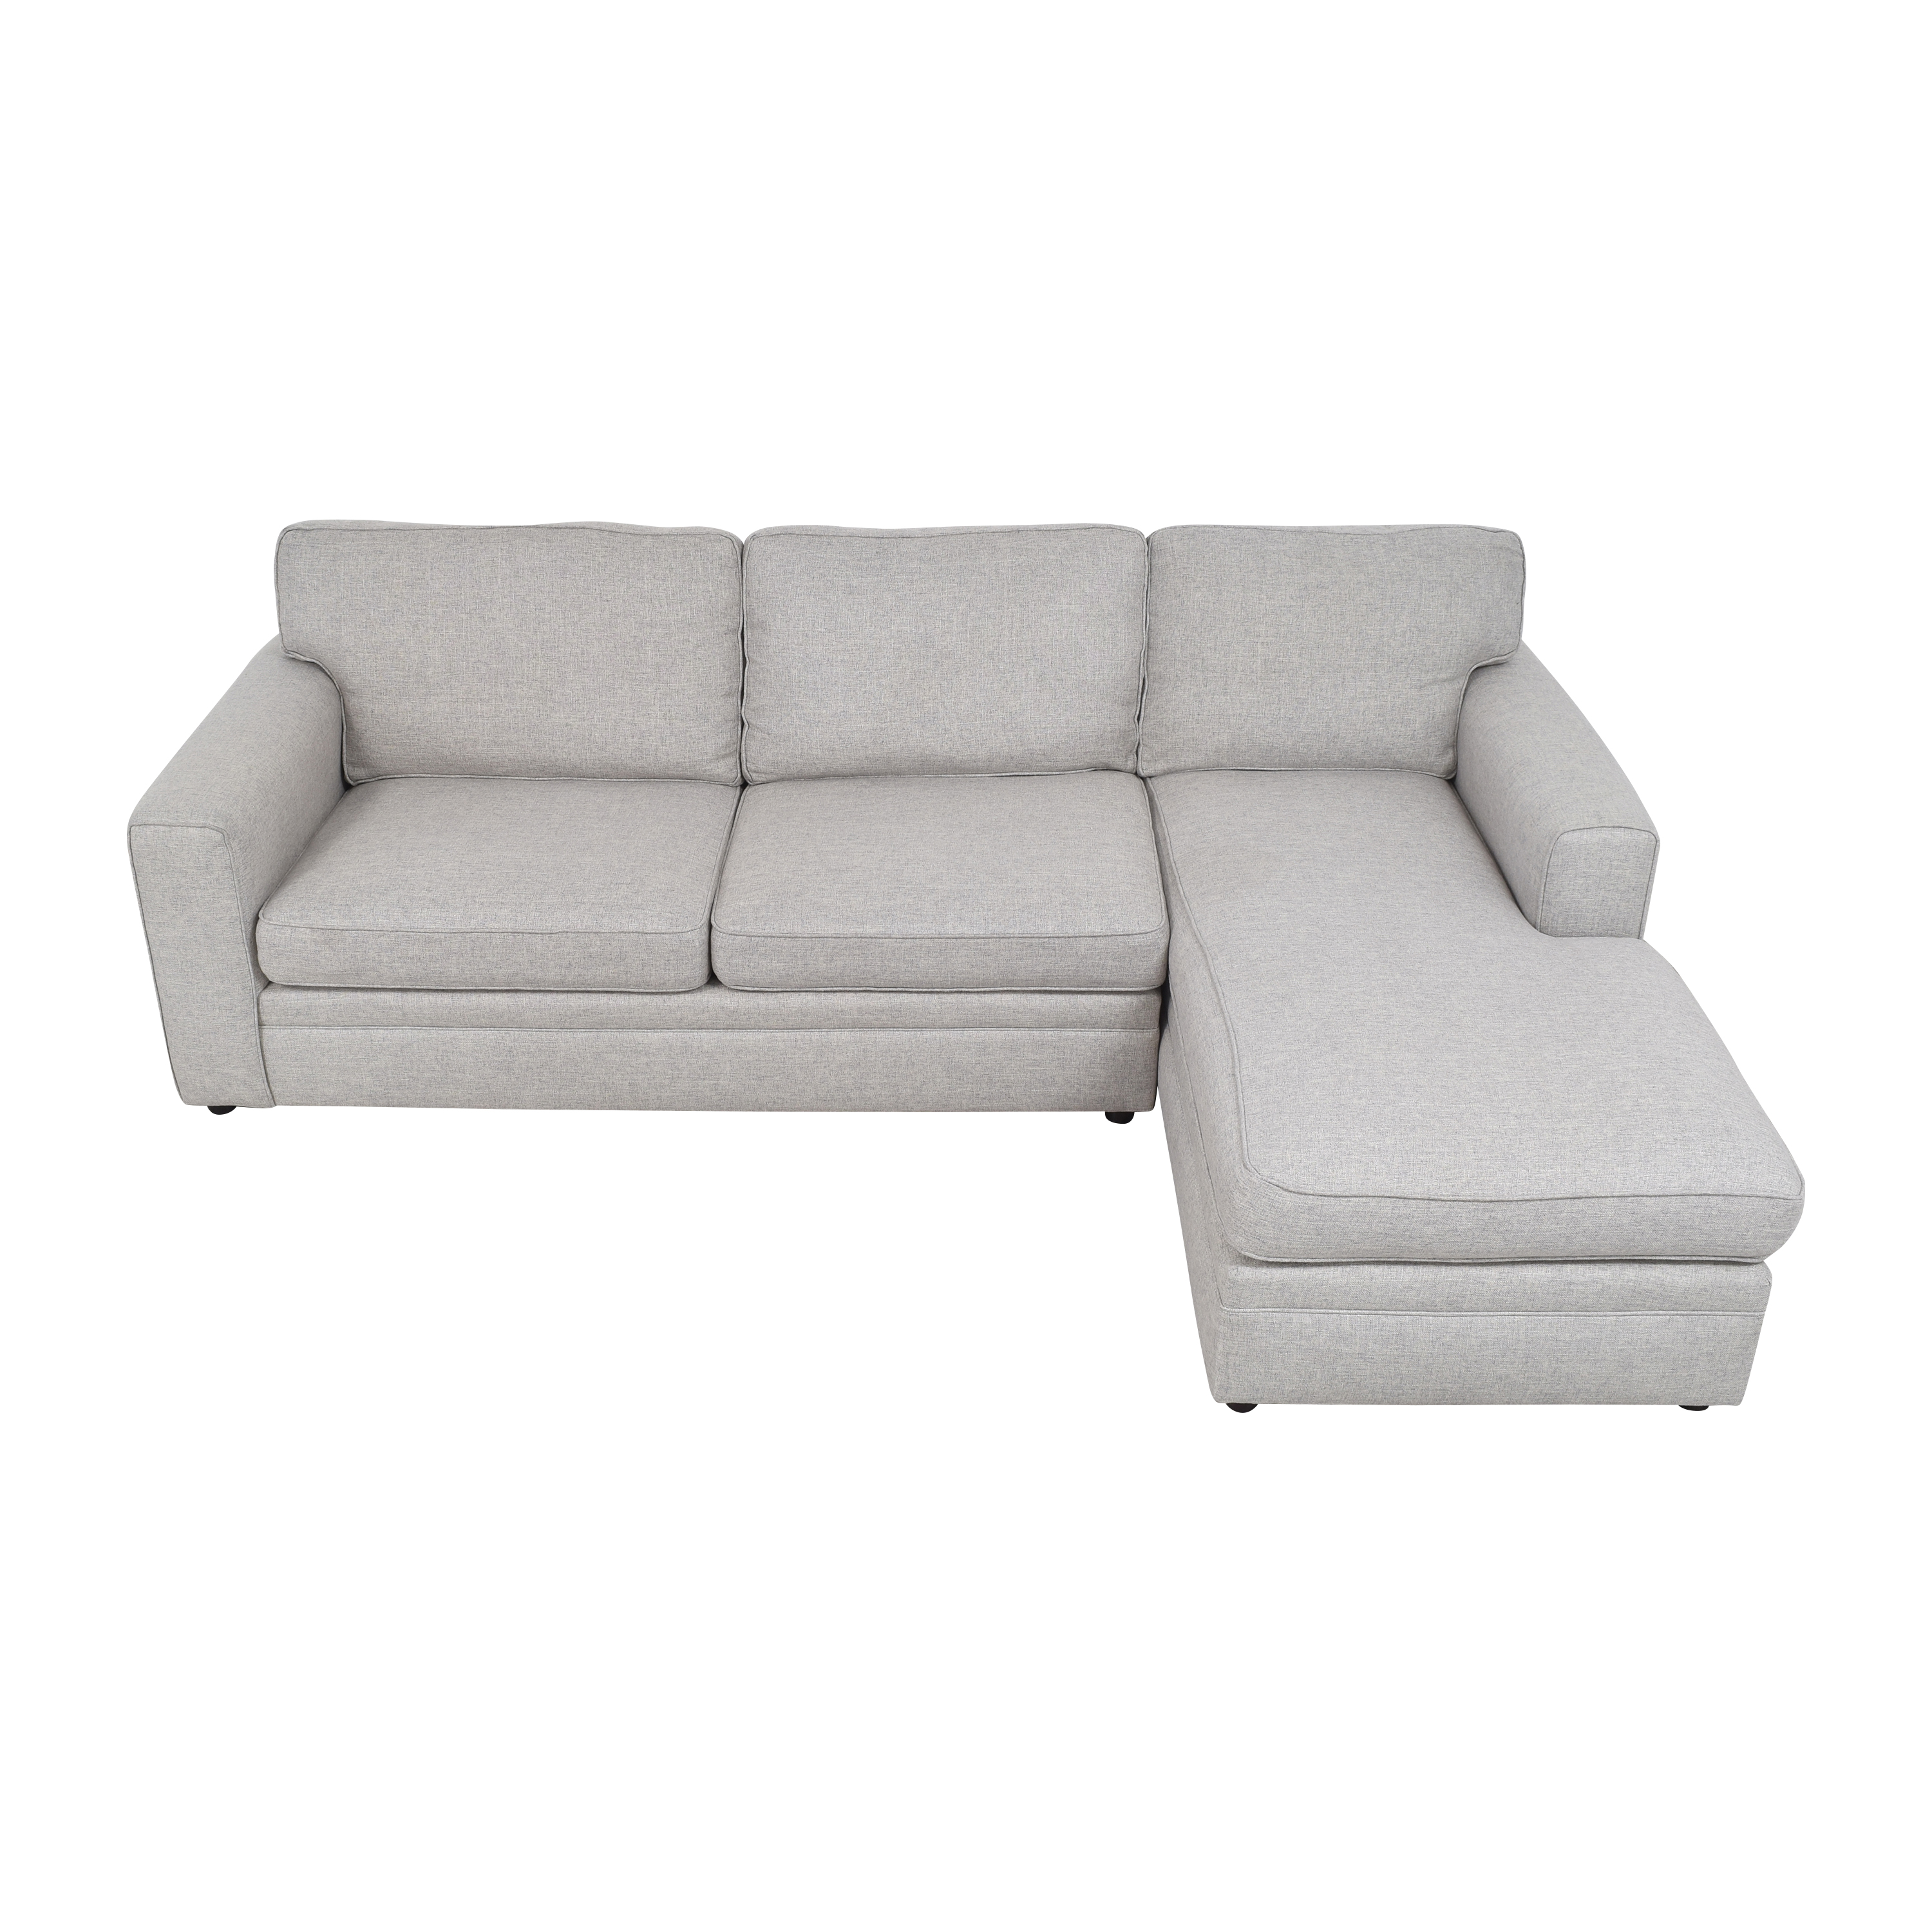 Pottery Barn Pearce Square Arm Chaise Sectional Sofa / Sofas